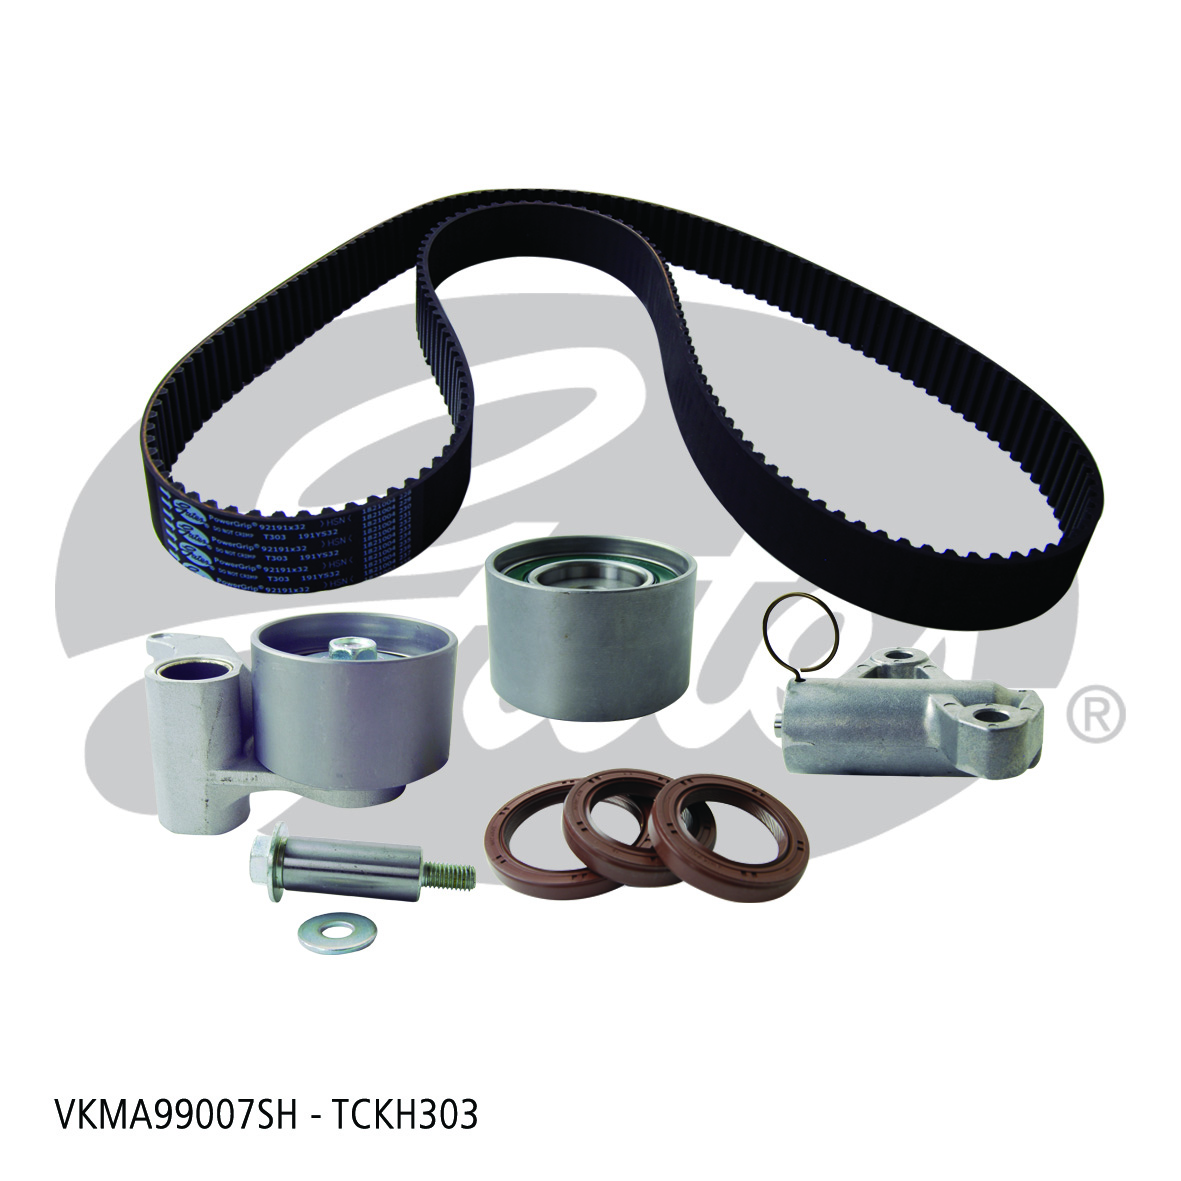 New Gates Timing Belt Kit TCKH303 fits Holden Jackaroo 3.5 RS 4x4 (UBS26)